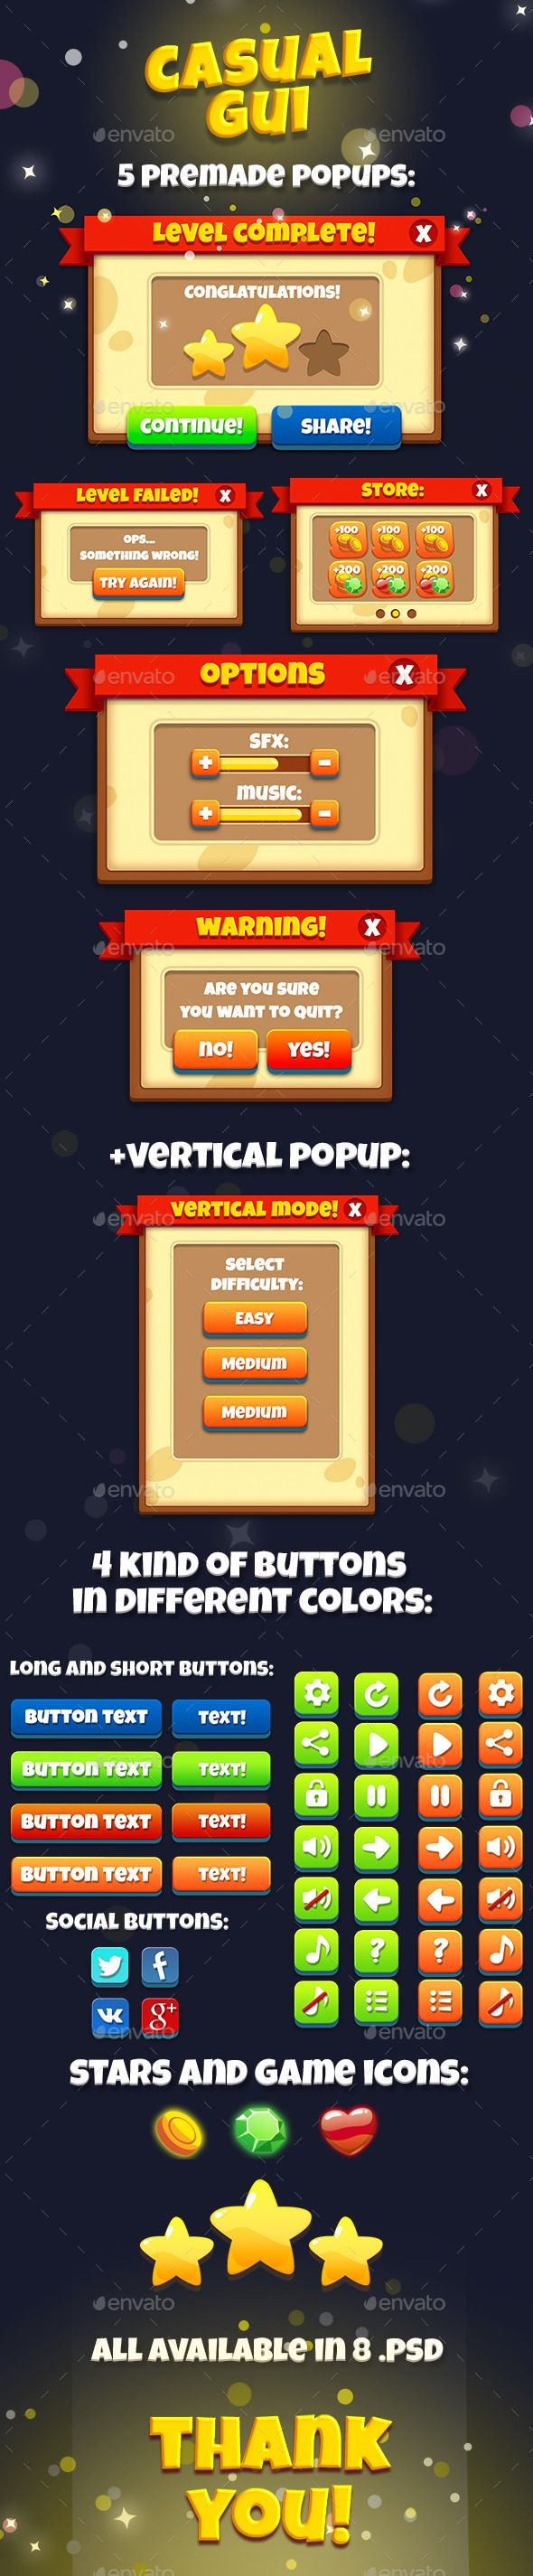 Casual Game Interface Kit | Download http://graphicriver.net/item/casual-game-interface-kit-/13629189?ref=sinzo